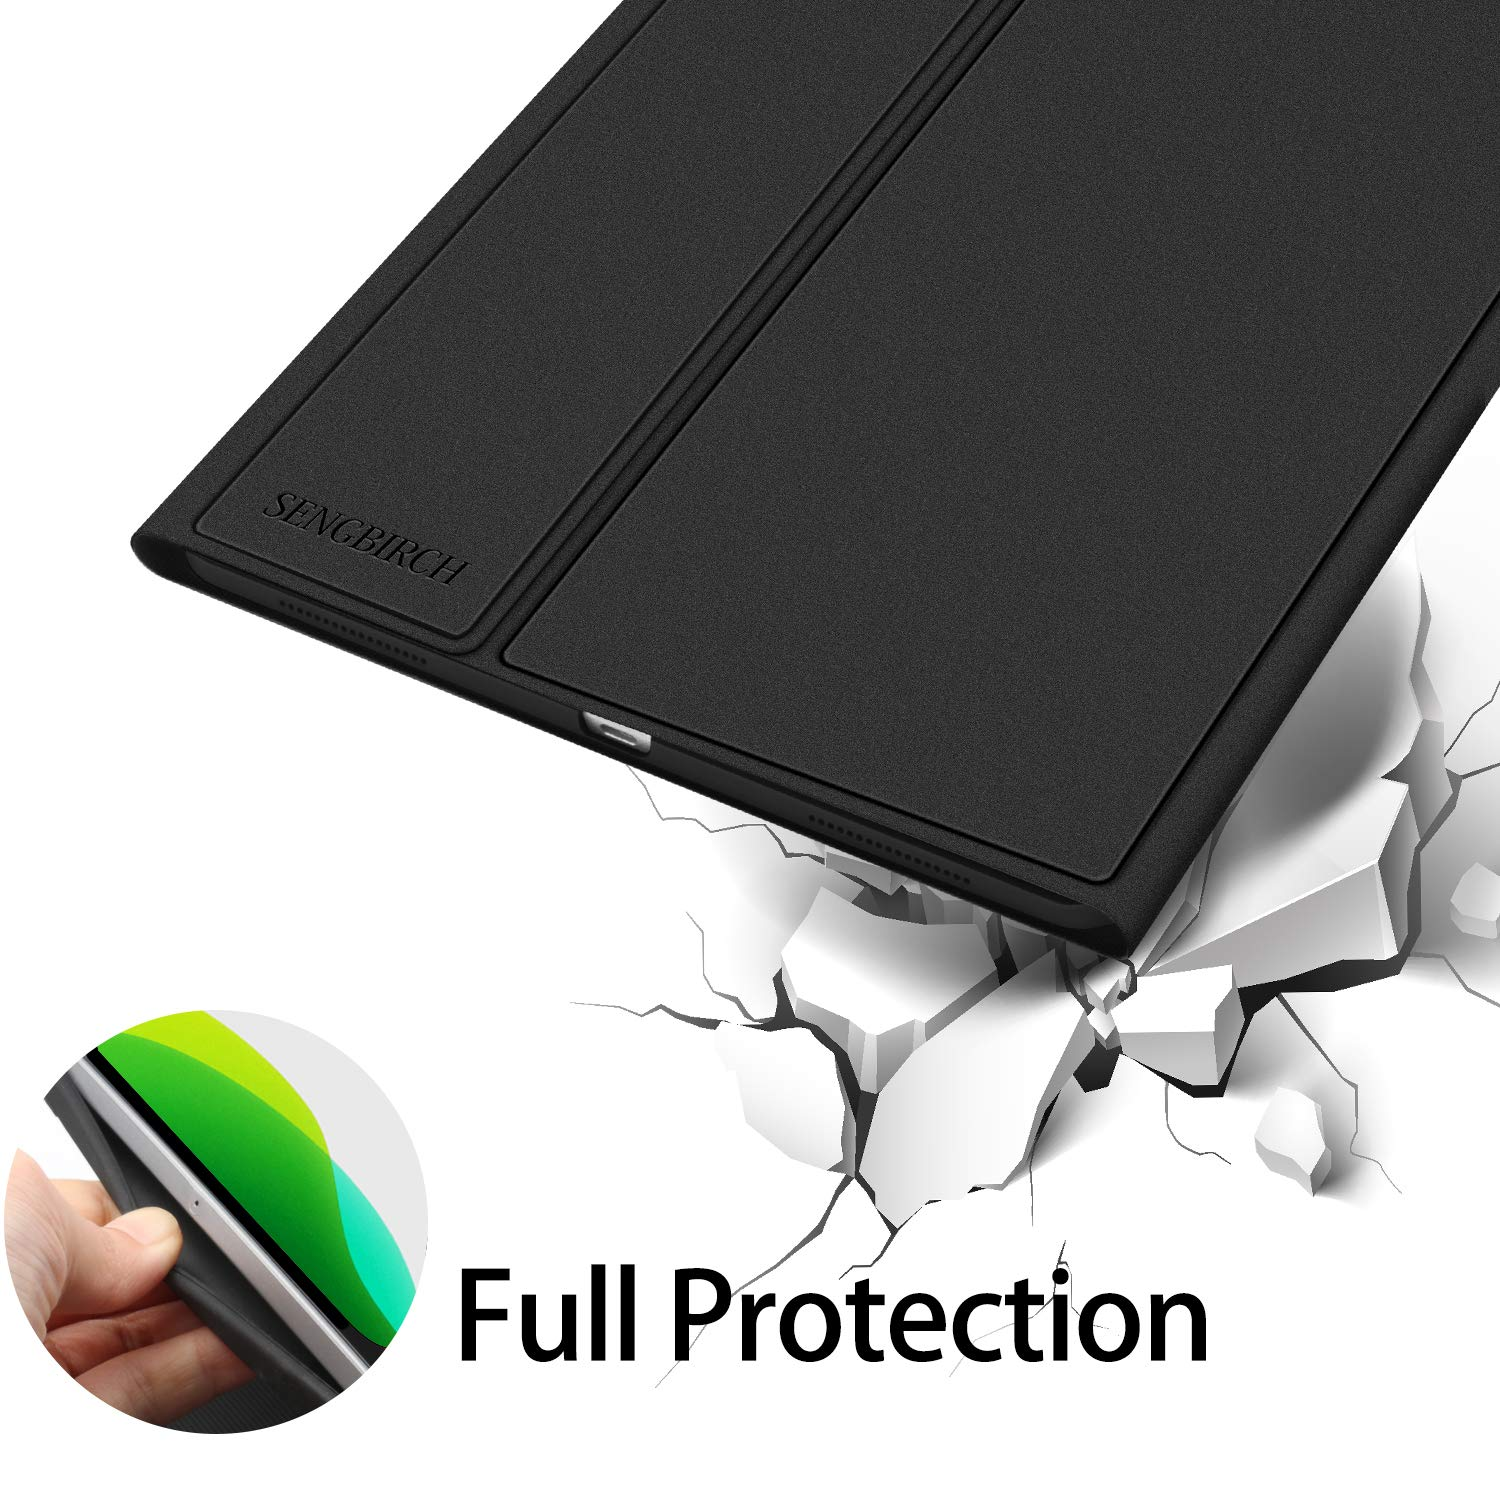 iPad Keyboard Case for iPad 10.2 2019-7th Generation iPad - iPad Pro 10.5(Air 3) - 7 Colors Backlight, Magnetically Detachable Wireless Keyboard - Folio Cover for New iPad 10.2\